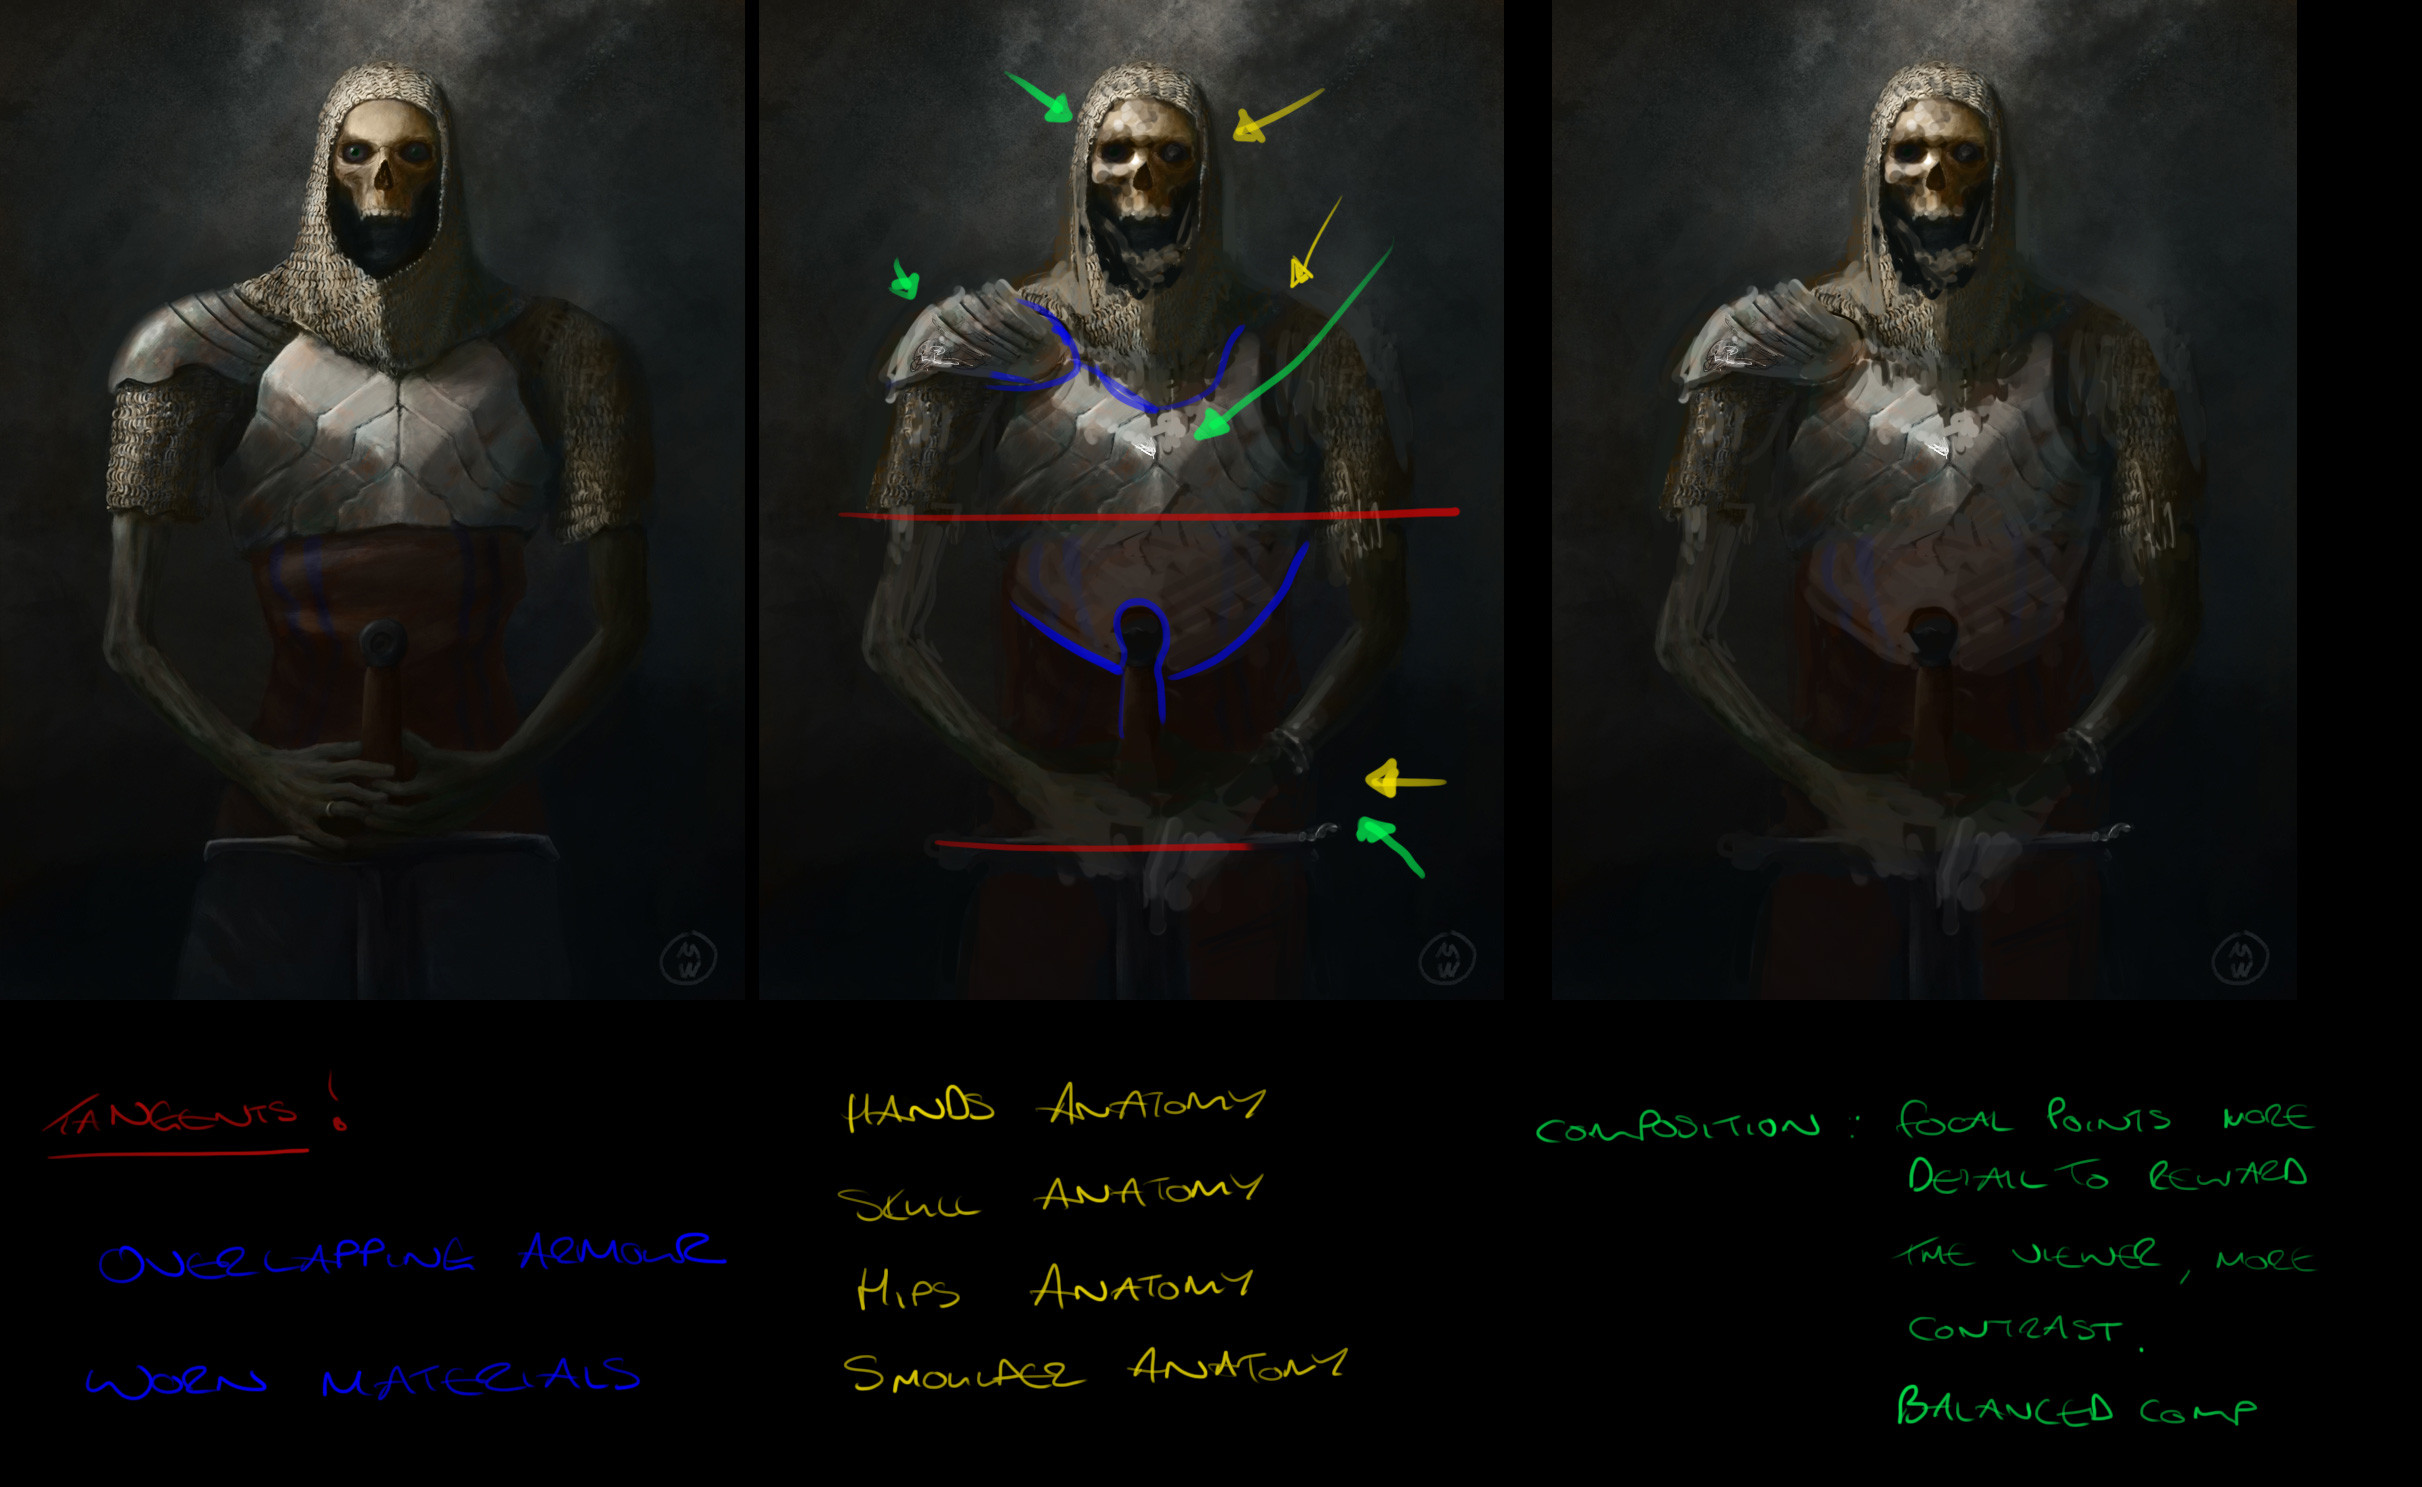 Over paint and critique given by Christopher Cant which helped tremendously. Check out his Discord server: https://discordapp.com/invite/AVfgNMs